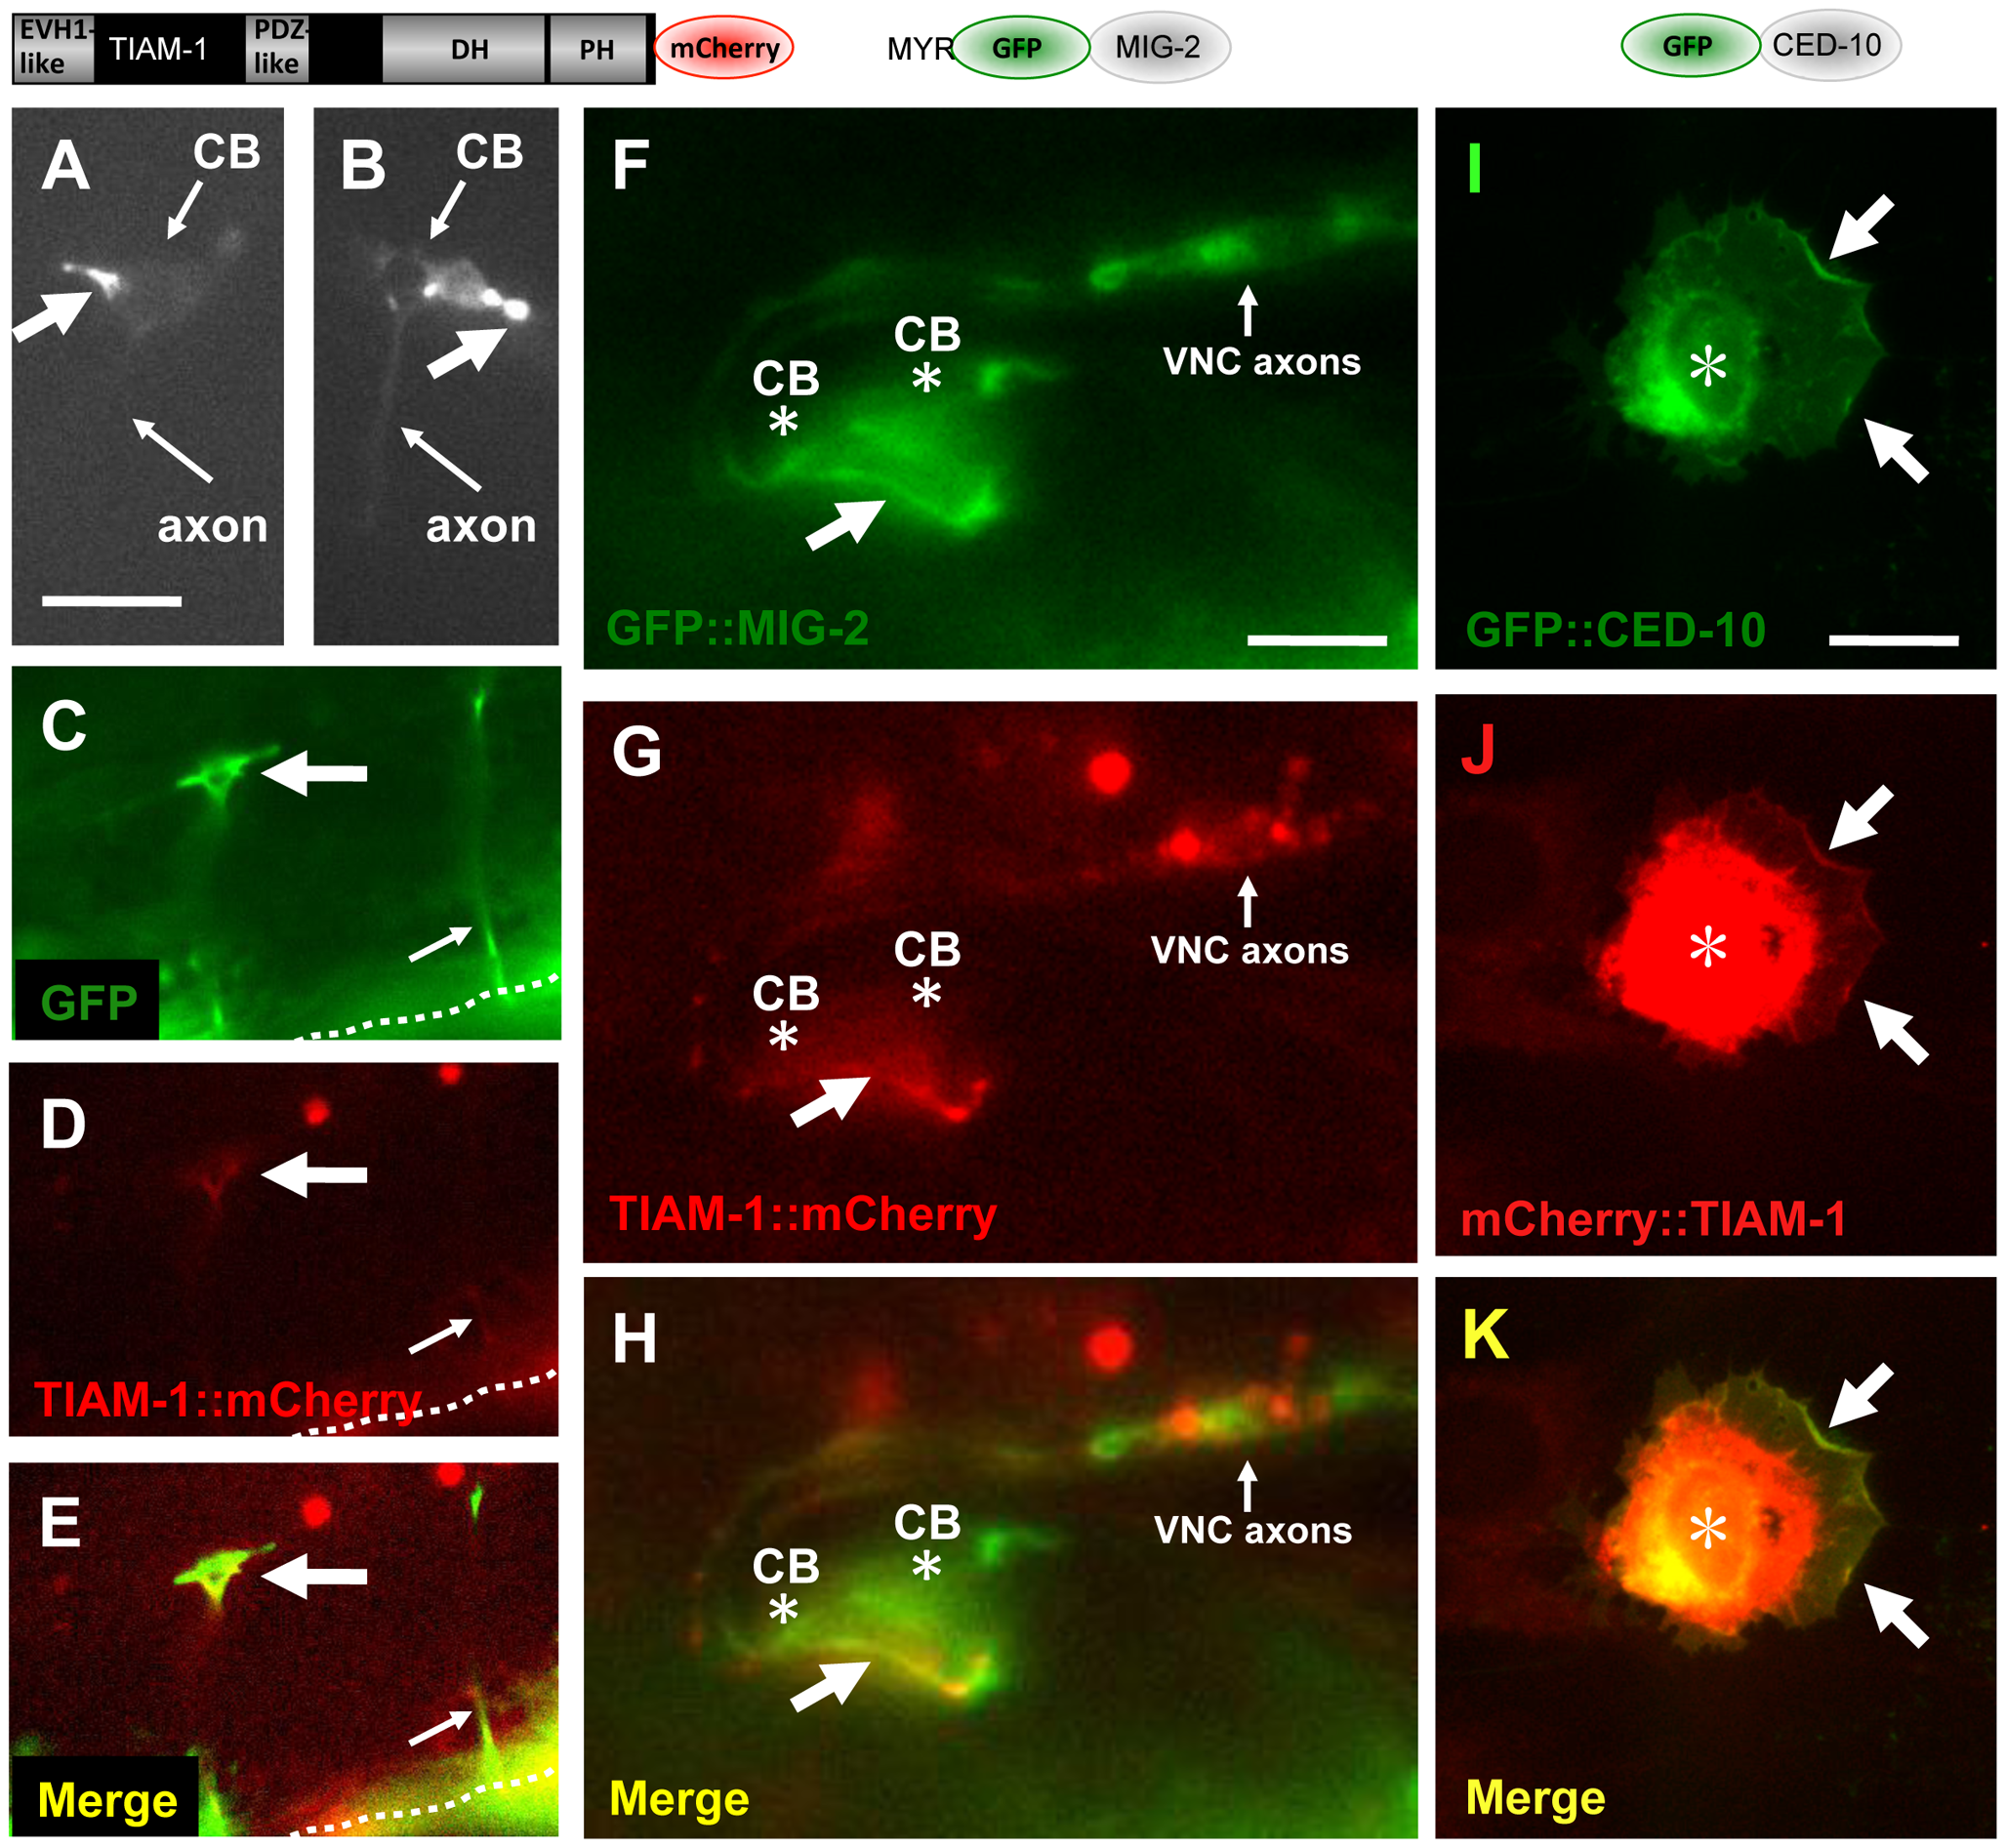 TIAM-1::mCherry is present in ectopic protrusions and growth cones and co-localizes with GFP::MIG-2 and GFP::CED-10.